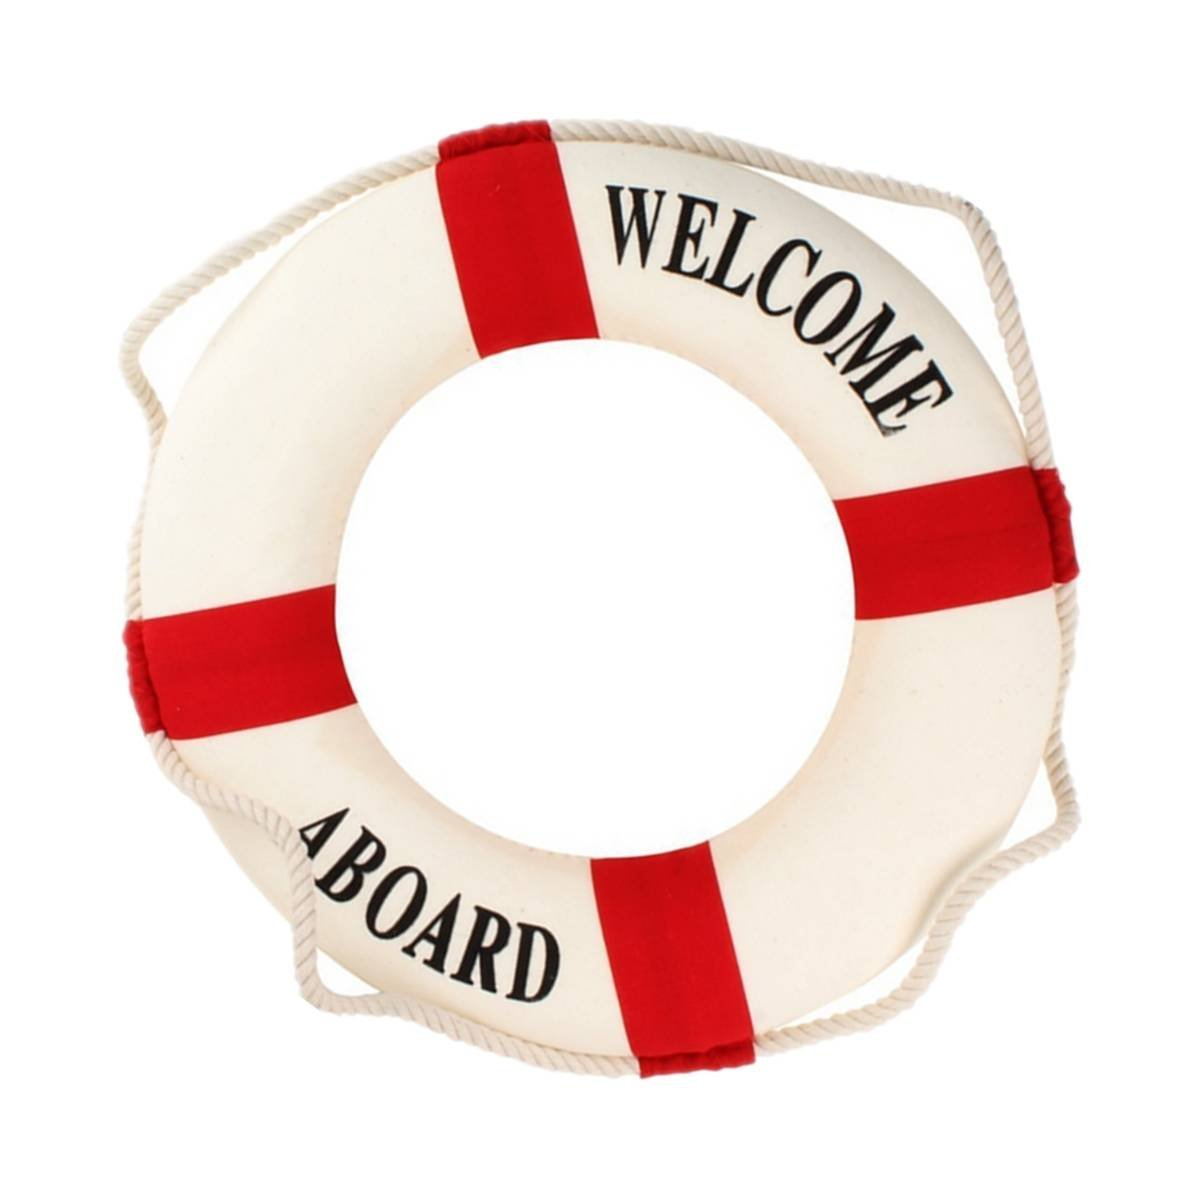 Welcome Aboard Foam Nautical Life Lifebuoy Ring Boat Wall Hanging Home Decoration Red 50cmWelcome Aboard Foam Nautical Life Lifebuoy Ring Boat Wall Hanging Home Decoration Red 50cm